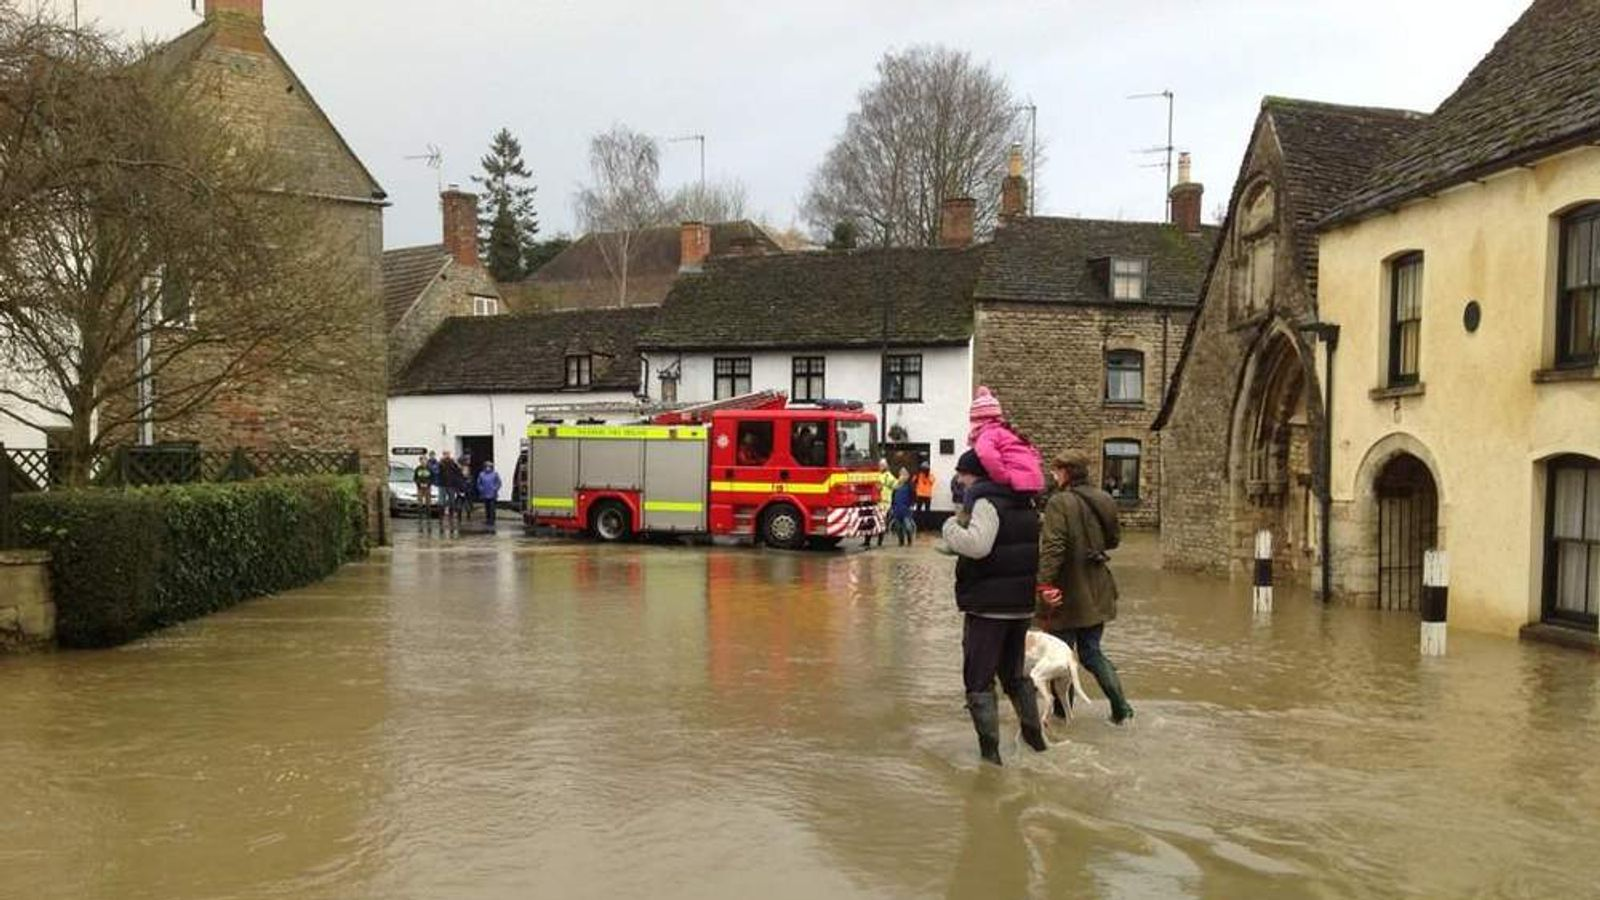 Flooding in Malmesbury